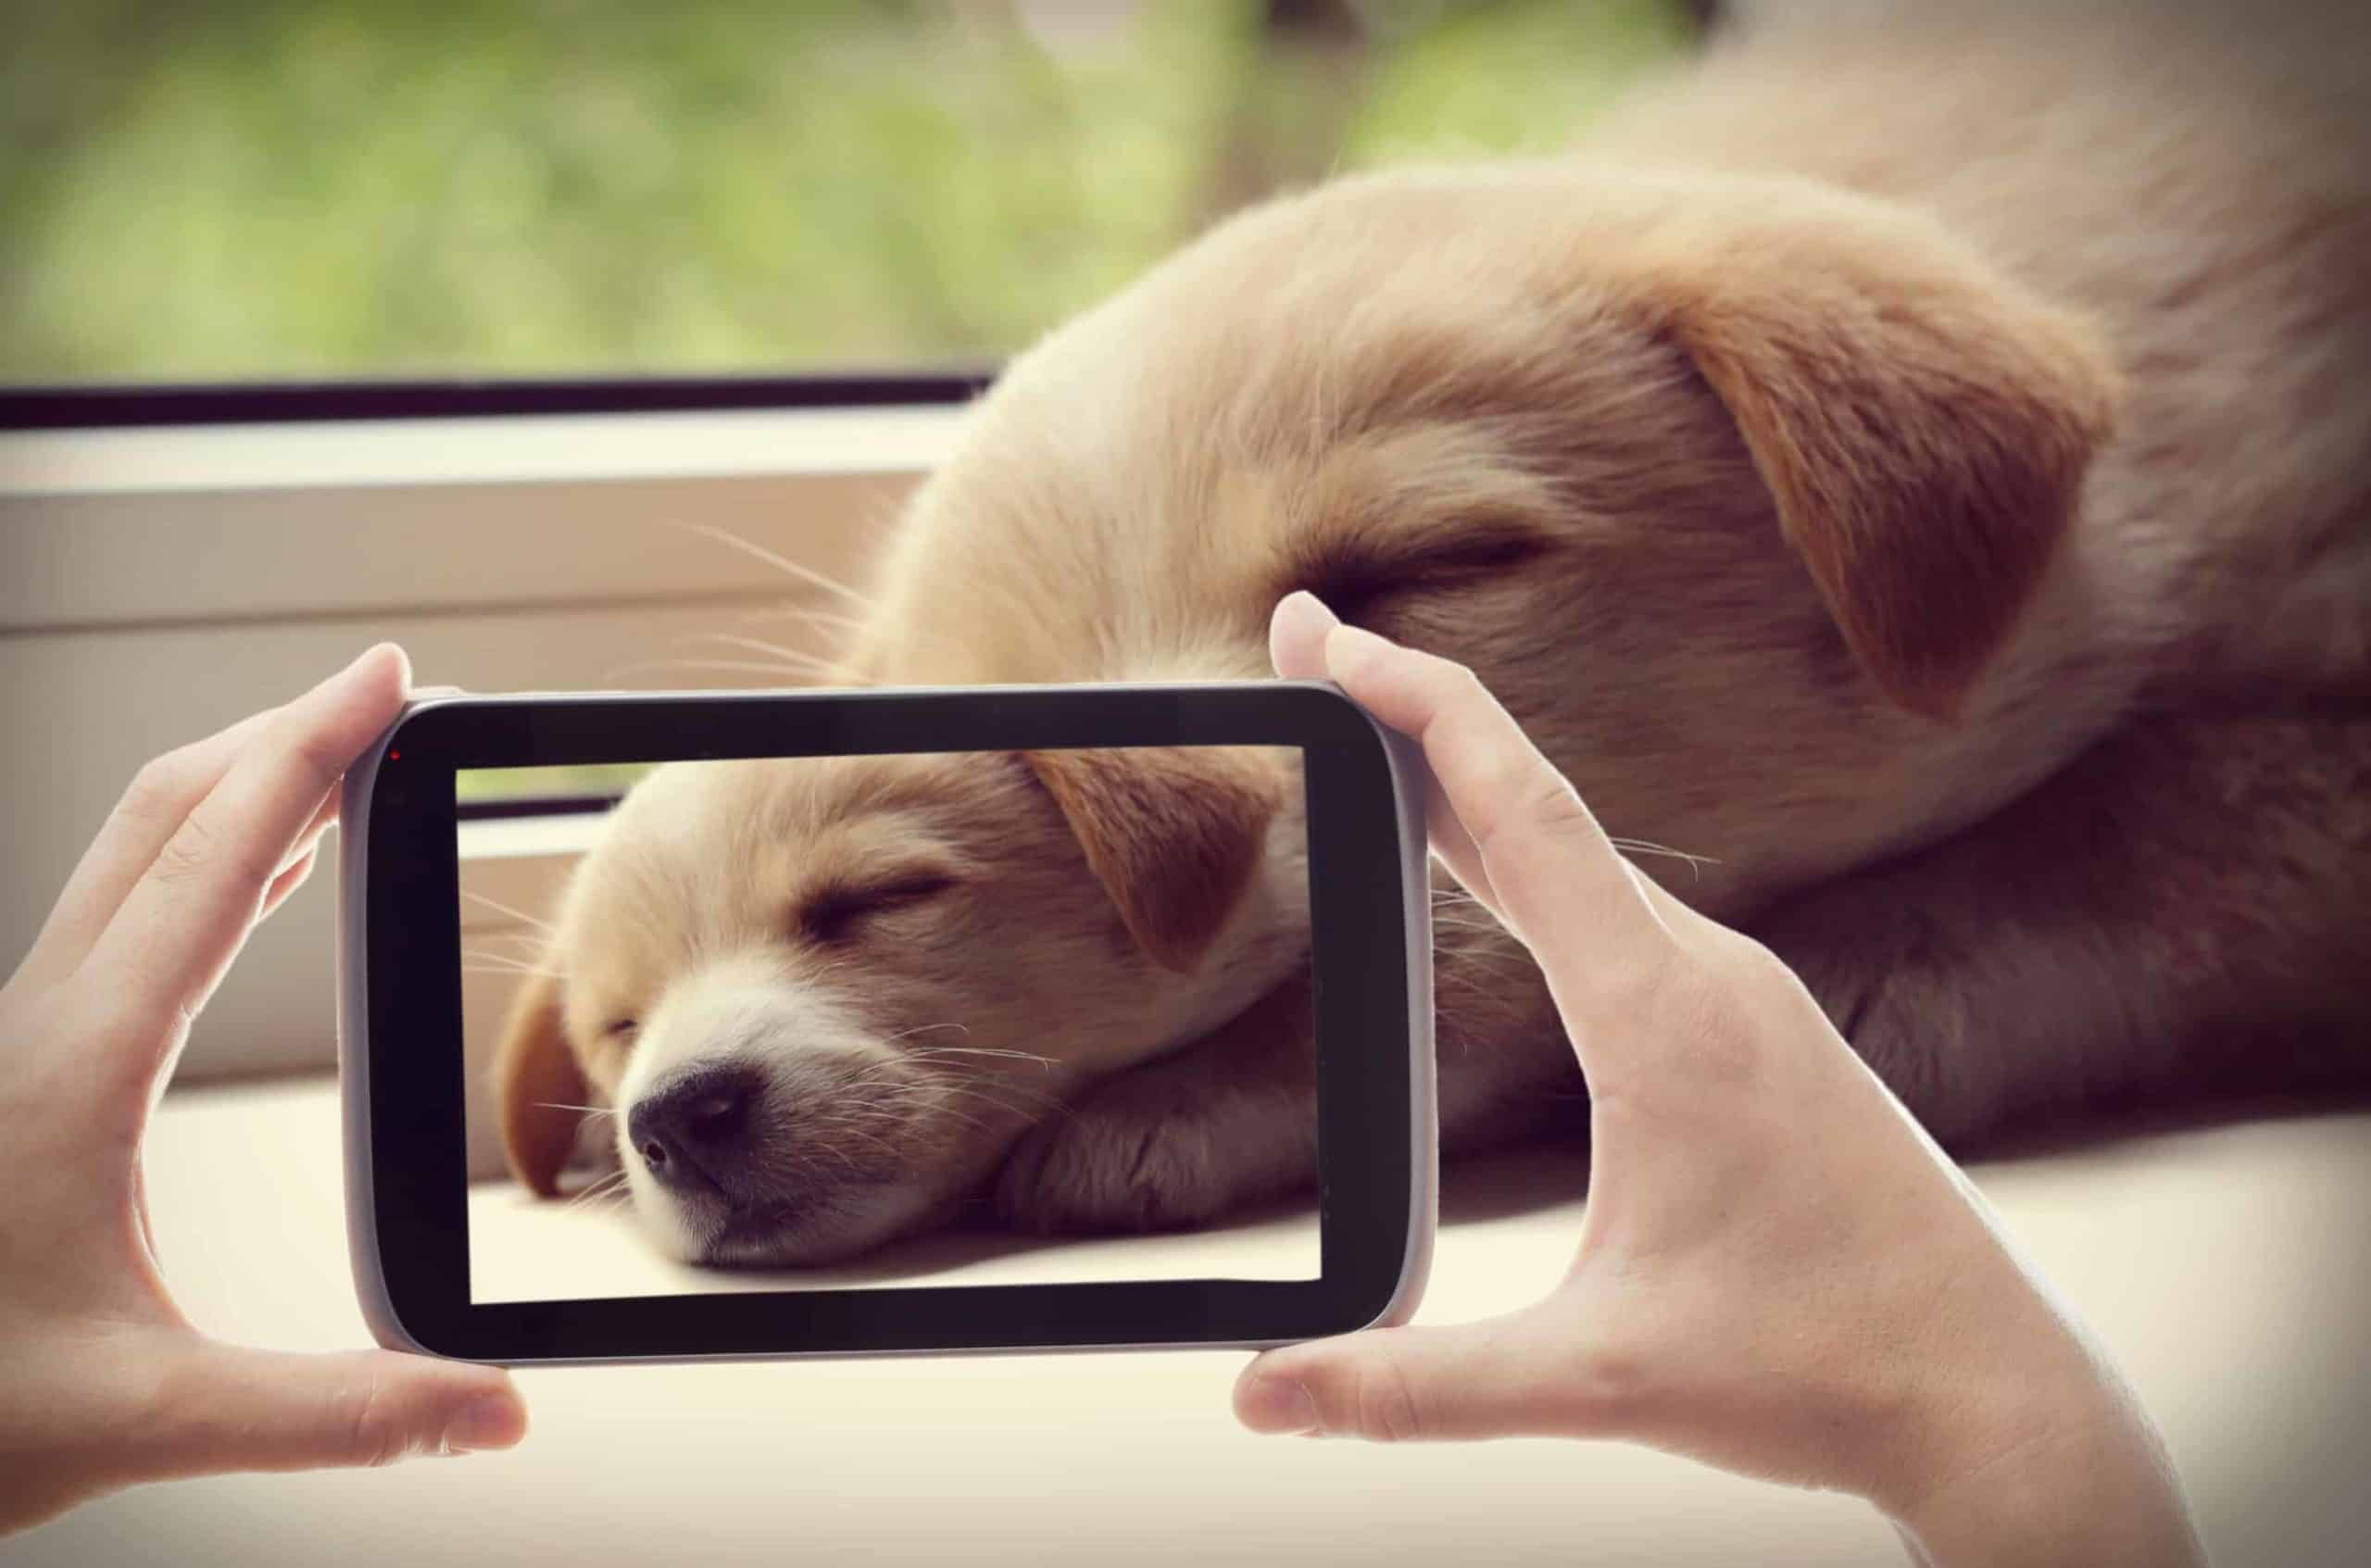 Owner takes picture of sleeping puppy. Creating a custom pet phone case lets you safeguard your favorite pet photo and immortalize it.